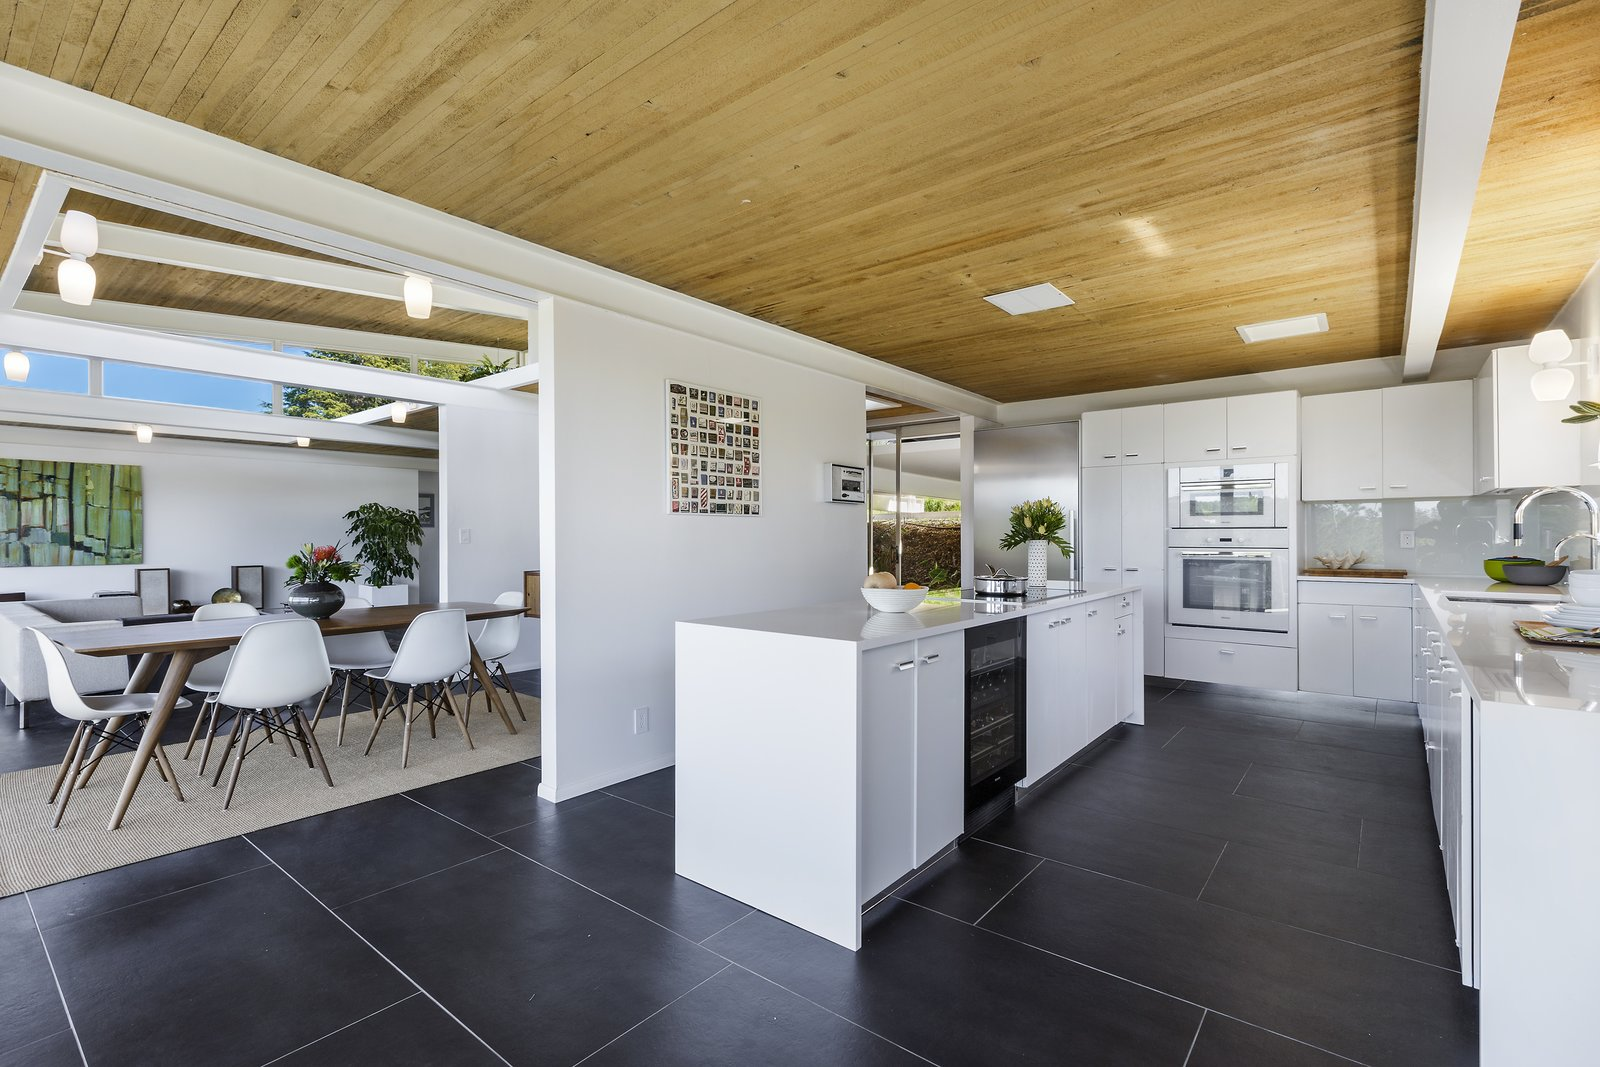 Kitchen, Wall Oven, White Cabinet, Wall Lighting, Refrigerator, Undermount Sink, Cooktops, and Beverage Center  Photo 11 of 17 in Spend the Night in an Iconic Case Study House North of San Francisco